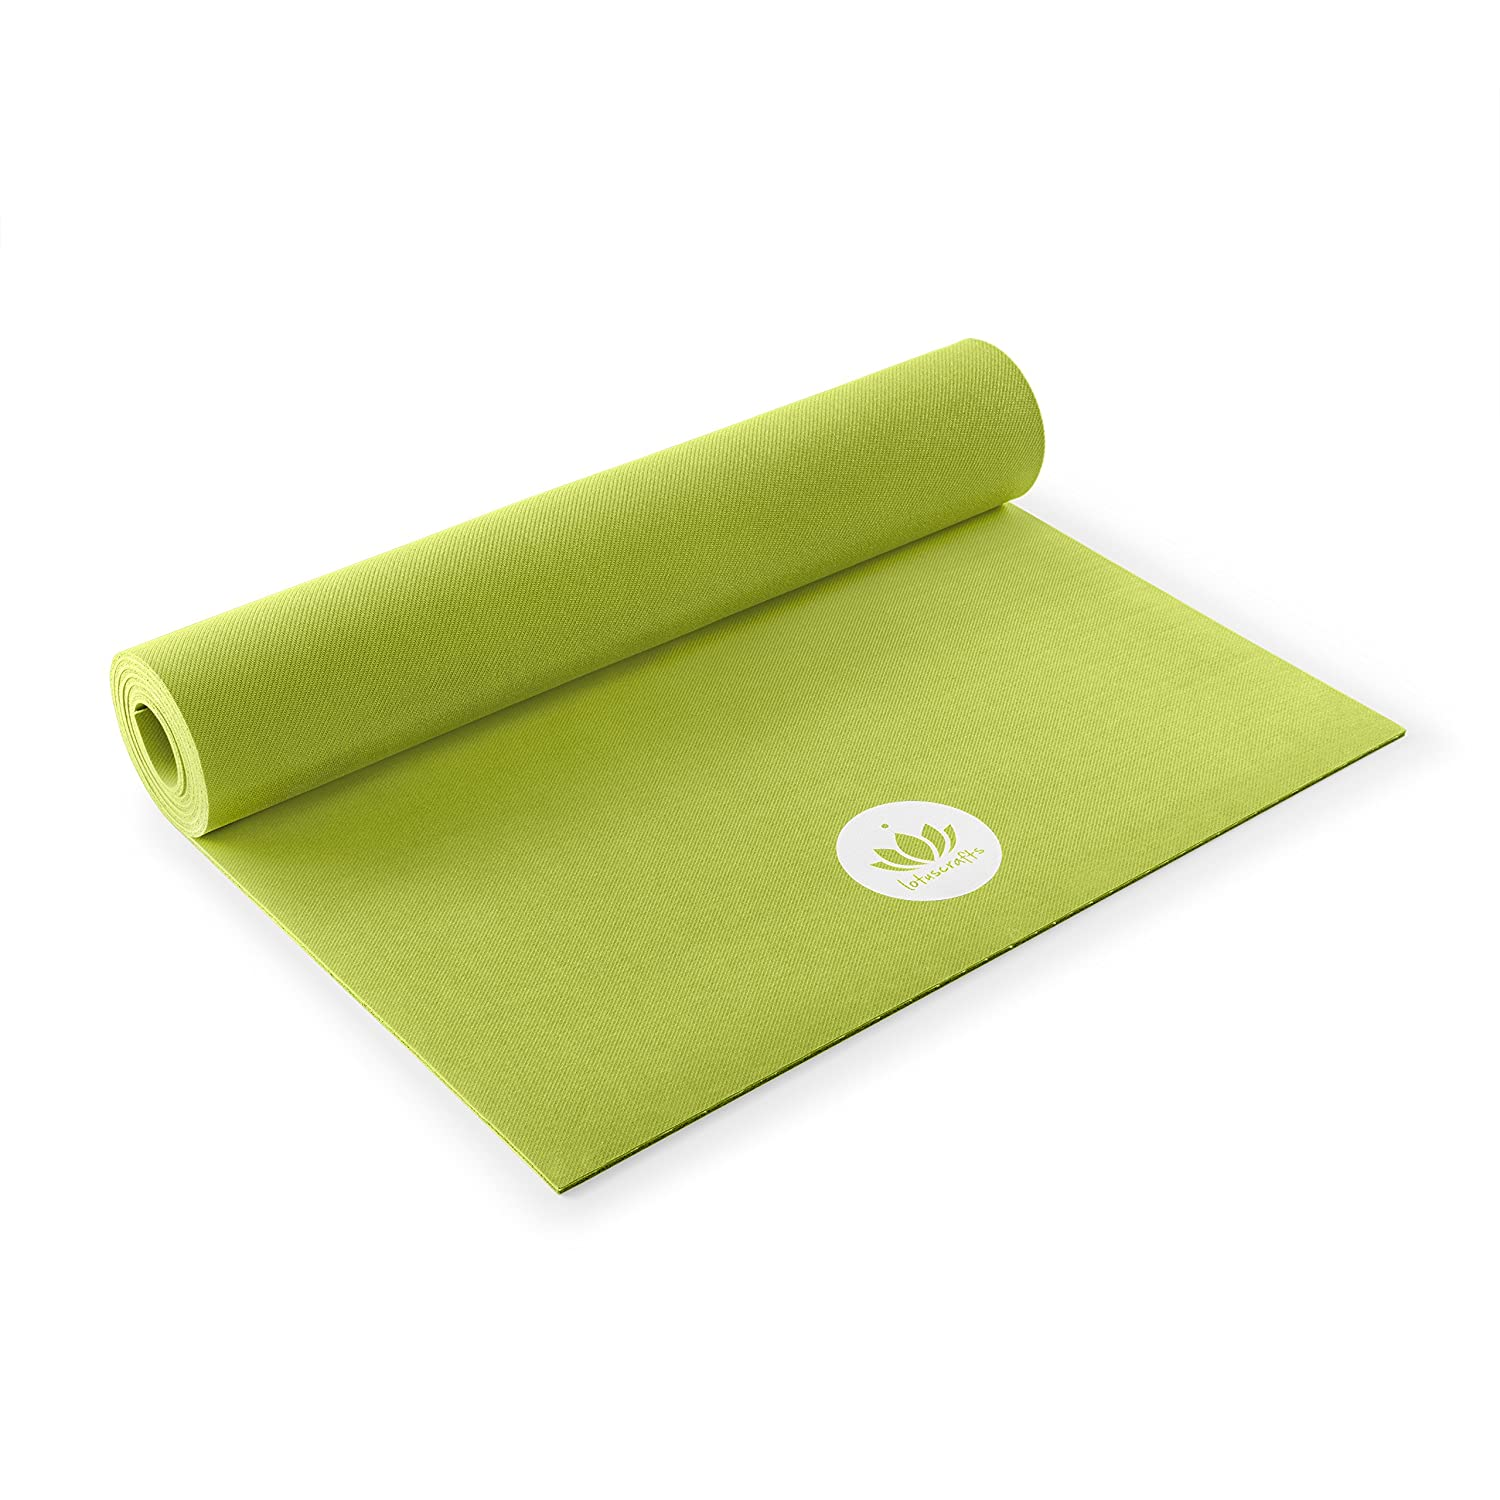 f2a47031b Lotuscrafts Rubber Yoga Mat Oeko - 100% Natural and Ecological - Eco  Friendly Yoga Mat Non Slip - Non Toxic Yoga Mat Rubber - Yoga Mat for Home  and Gym ...